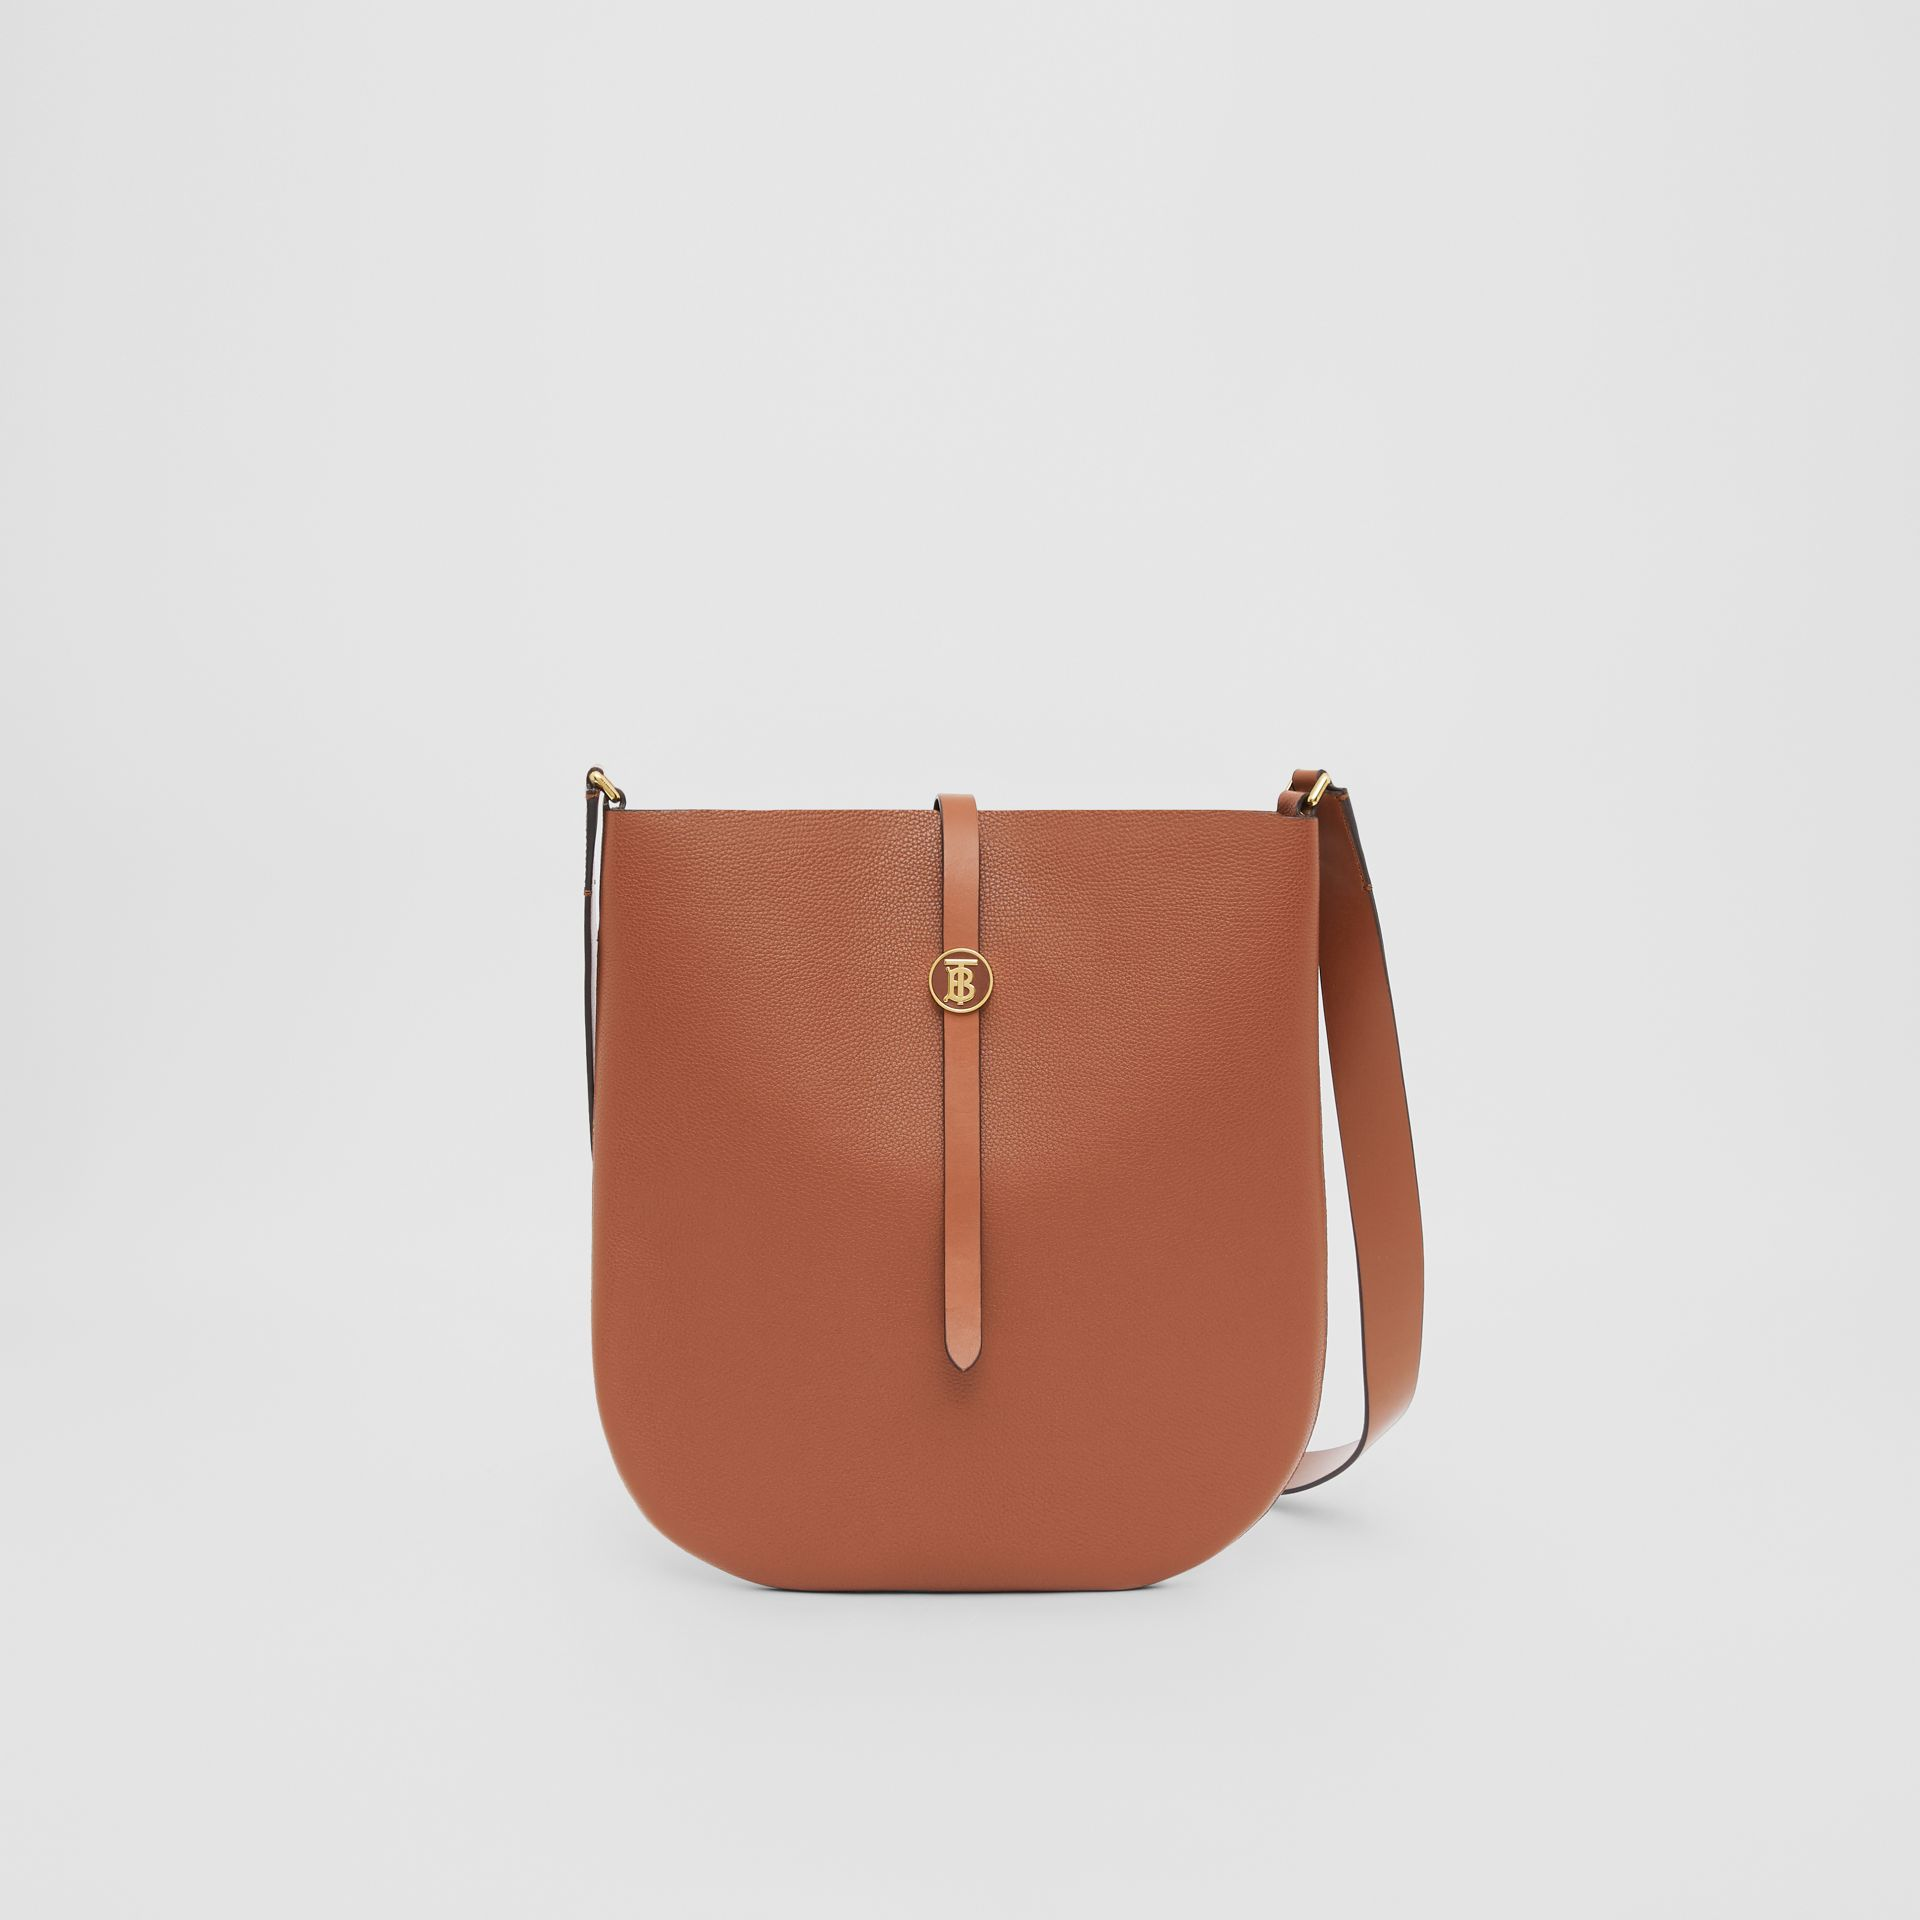 Grainy Leather Anne Bag in Tan - Women | Burberry United Kingdom - gallery image 0